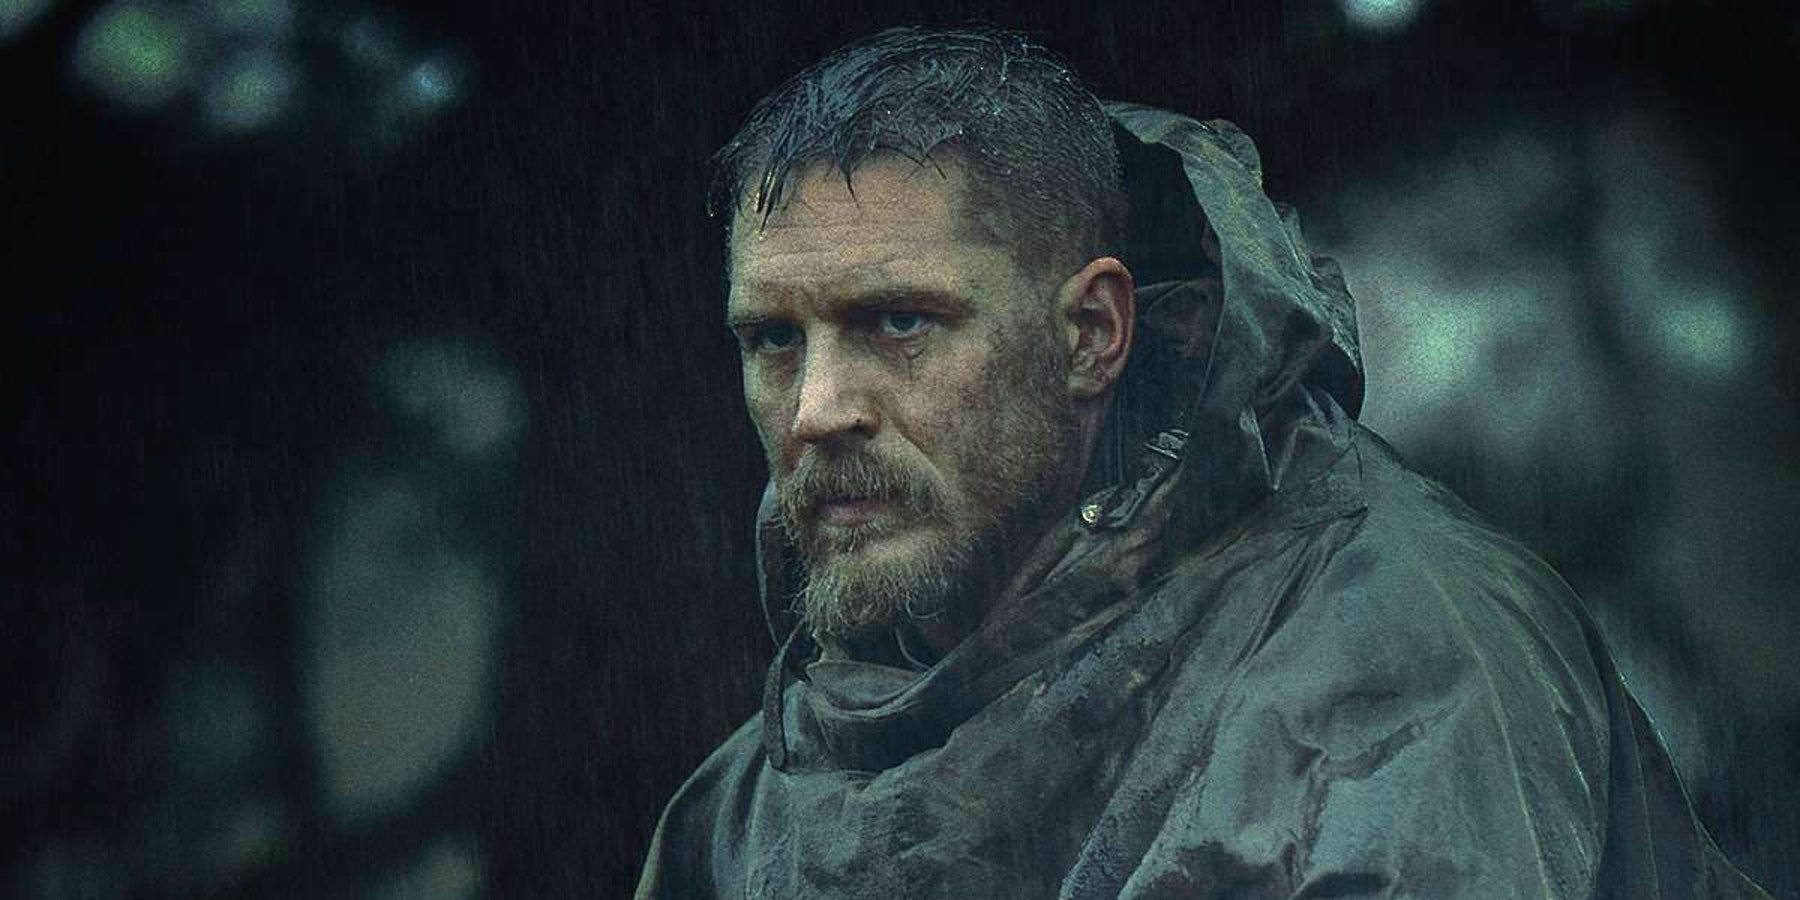 Is Tom Hardy Doing Voodoo in FX's 'Taboo' or What? | Inverse